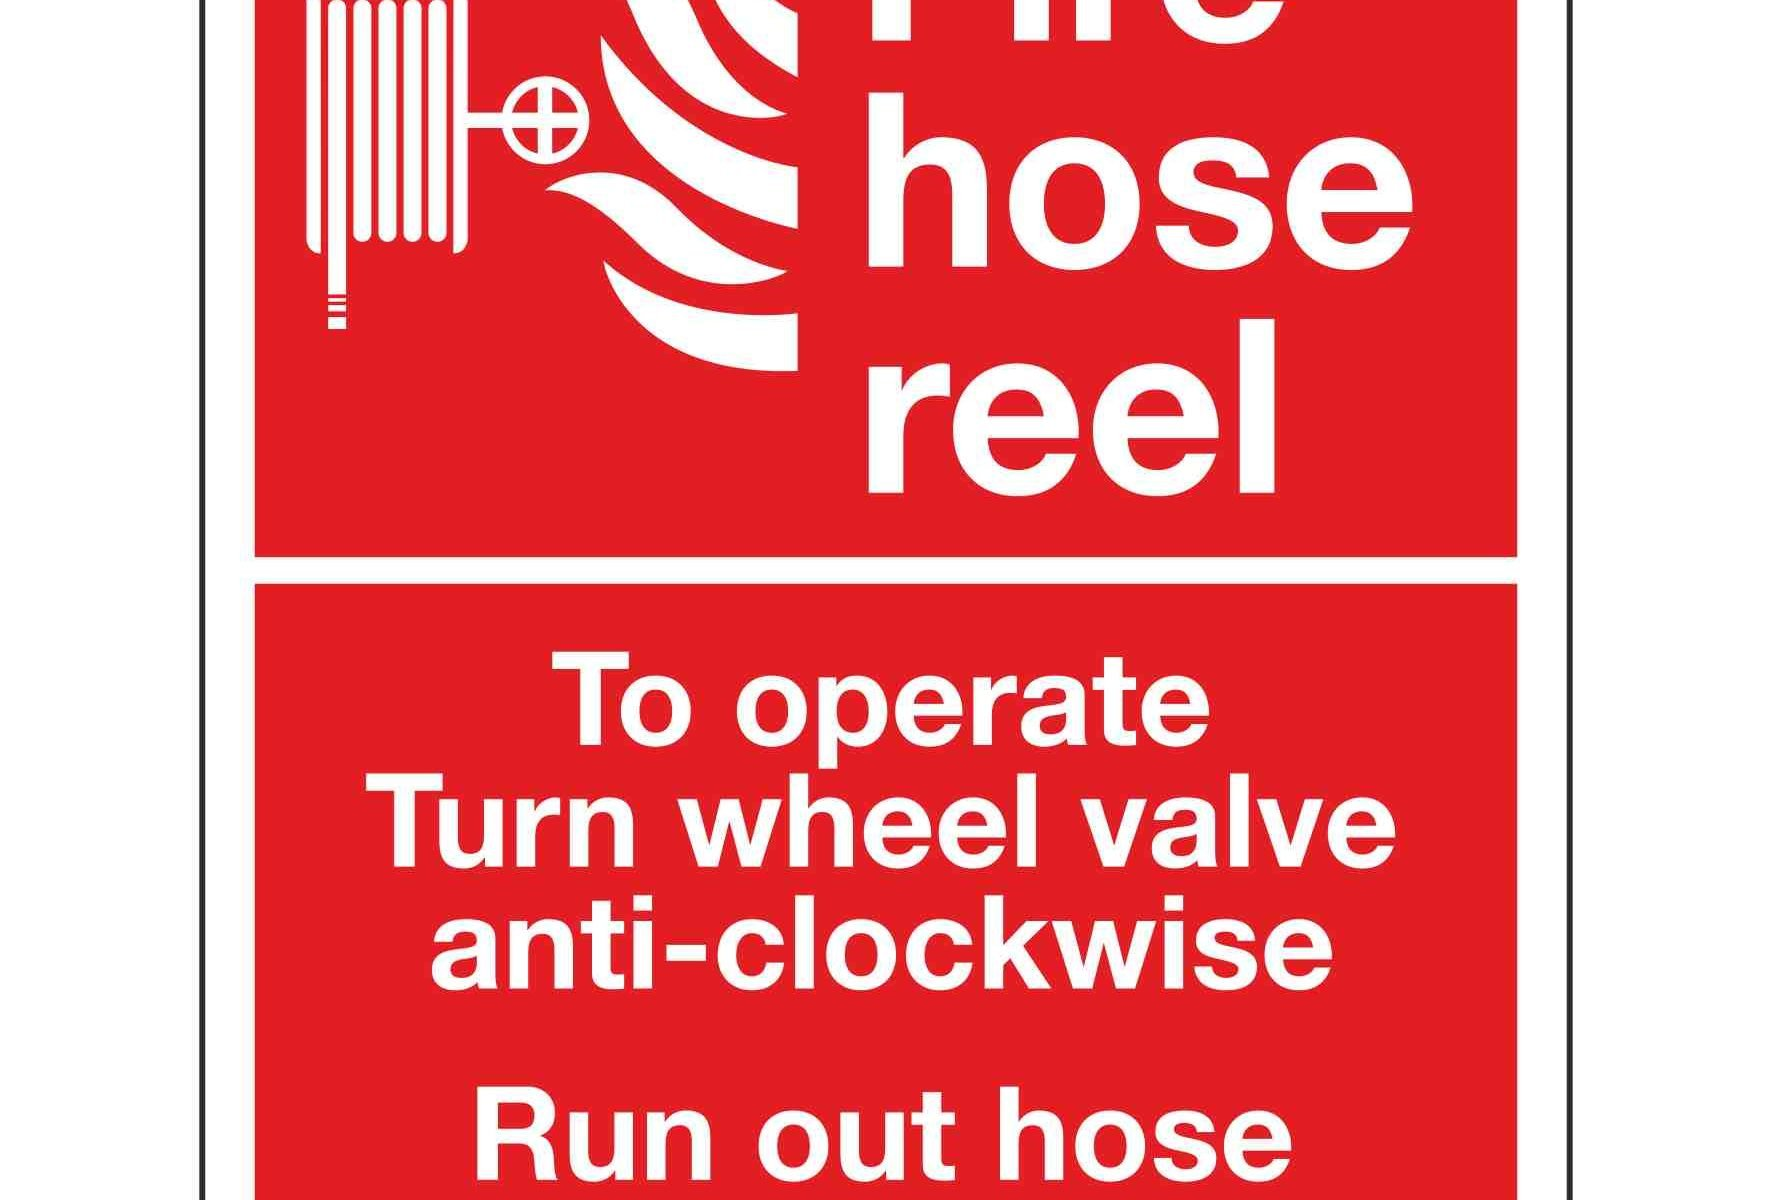 Fire hose reel To operate Turn wheel valve anti-clockwise Run out hose Turn on at nozzle